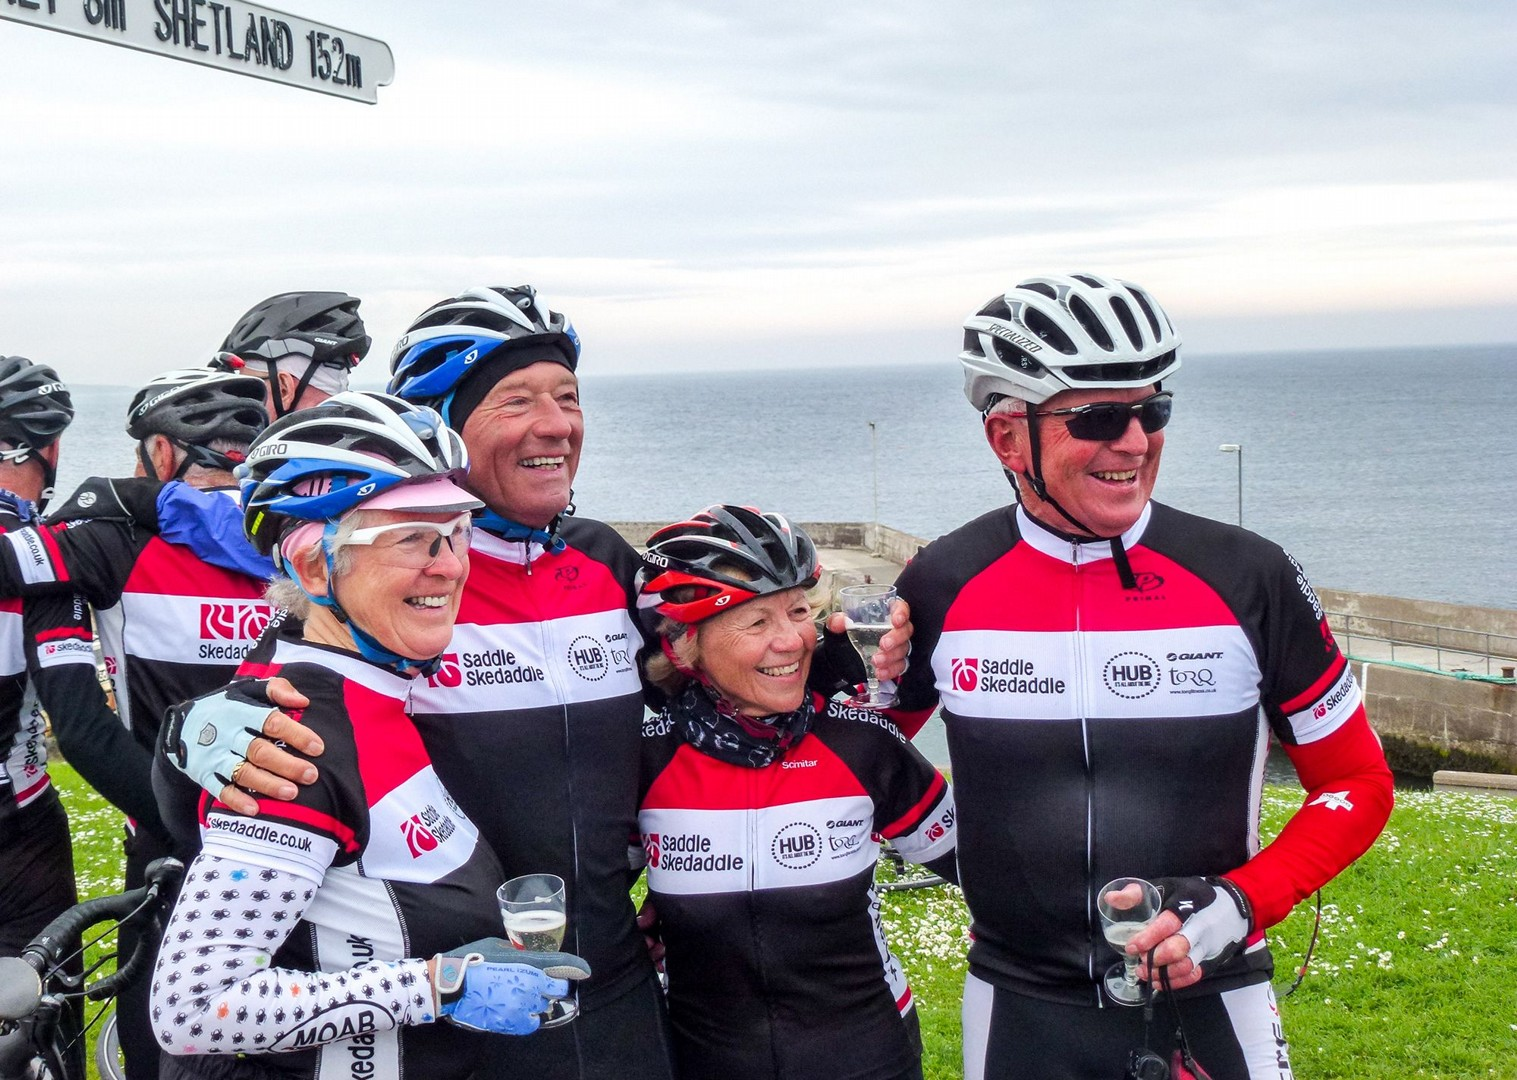 saddle-skedaddle-three-week-cycling-holiday-in-the-uk-guided-route-through-britain.jpg - UK - Land's End to John O'Groats Explorer (22 days) - Guided Cycling Holiday - Road Cycling